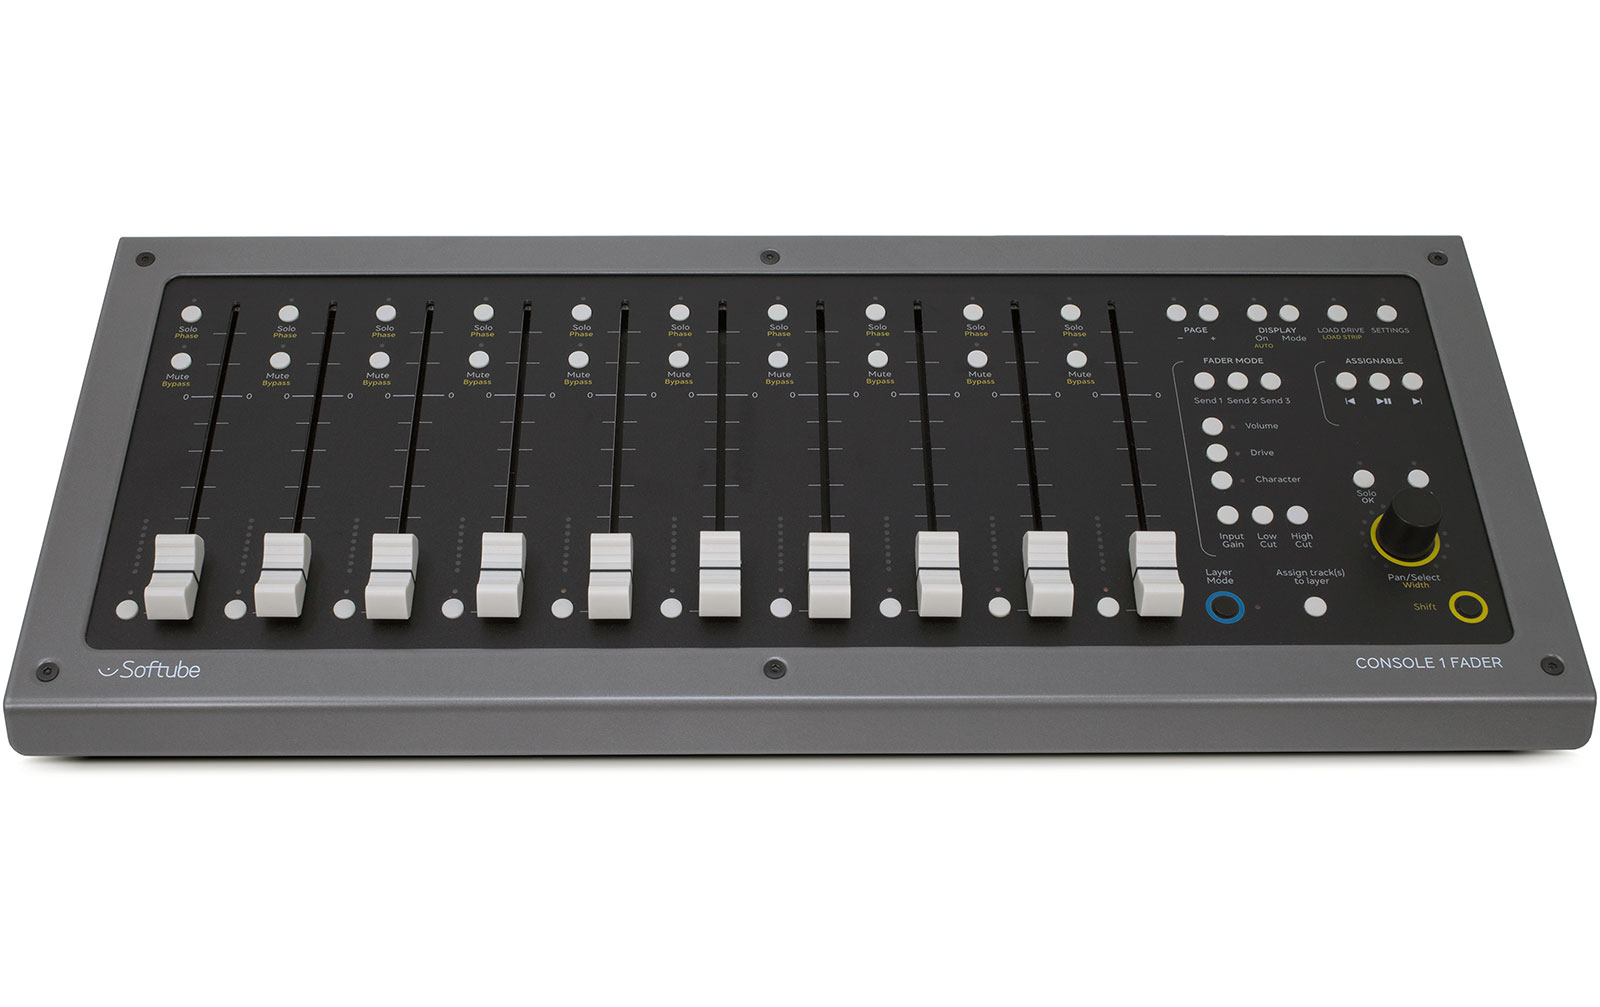 softube-console-1-fader